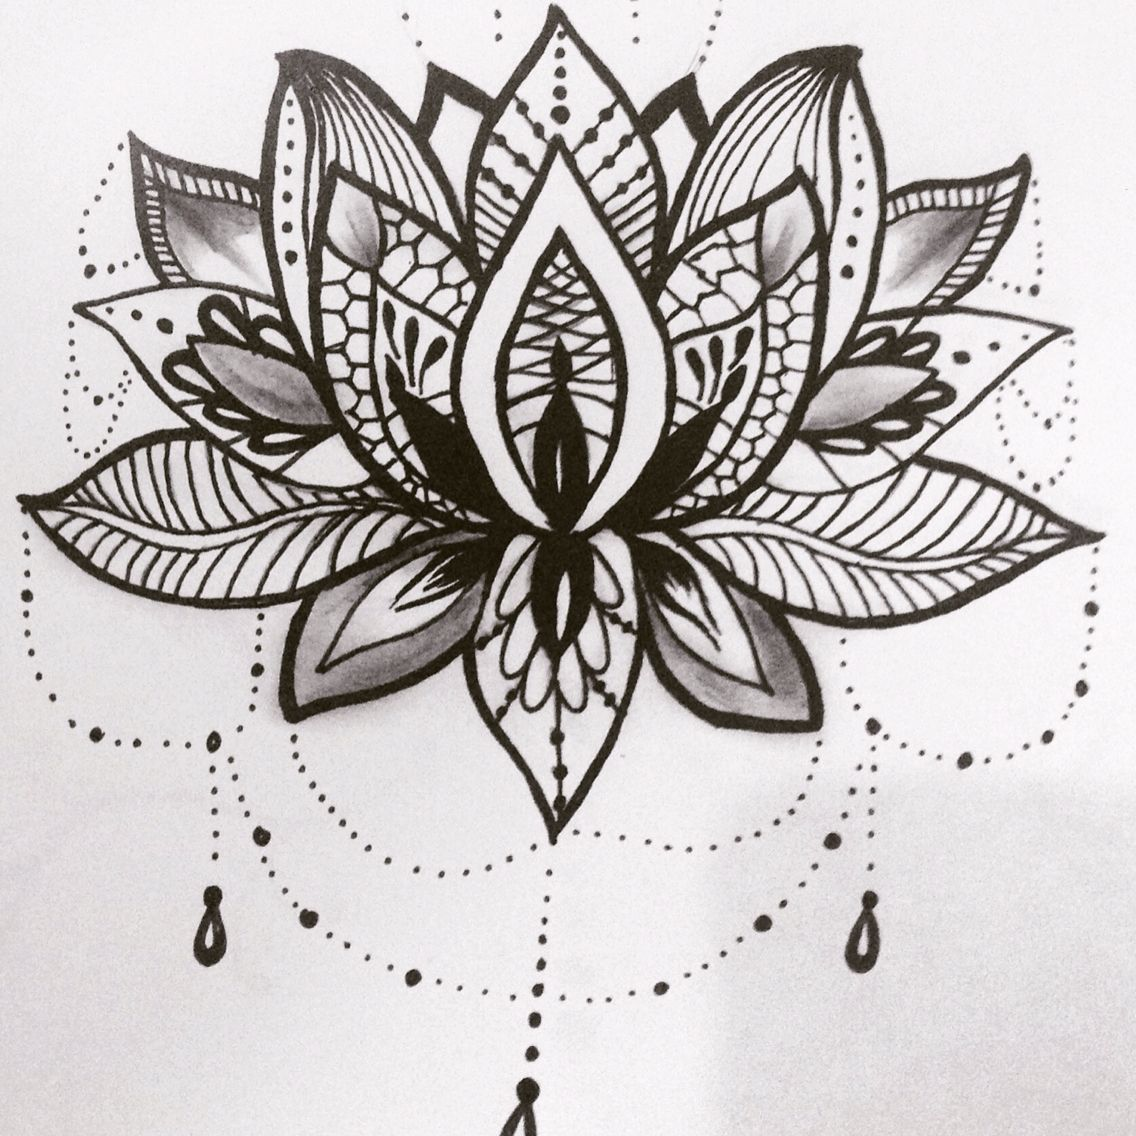 Lotus flower tattoo - Lotus Flower Tattoo Design